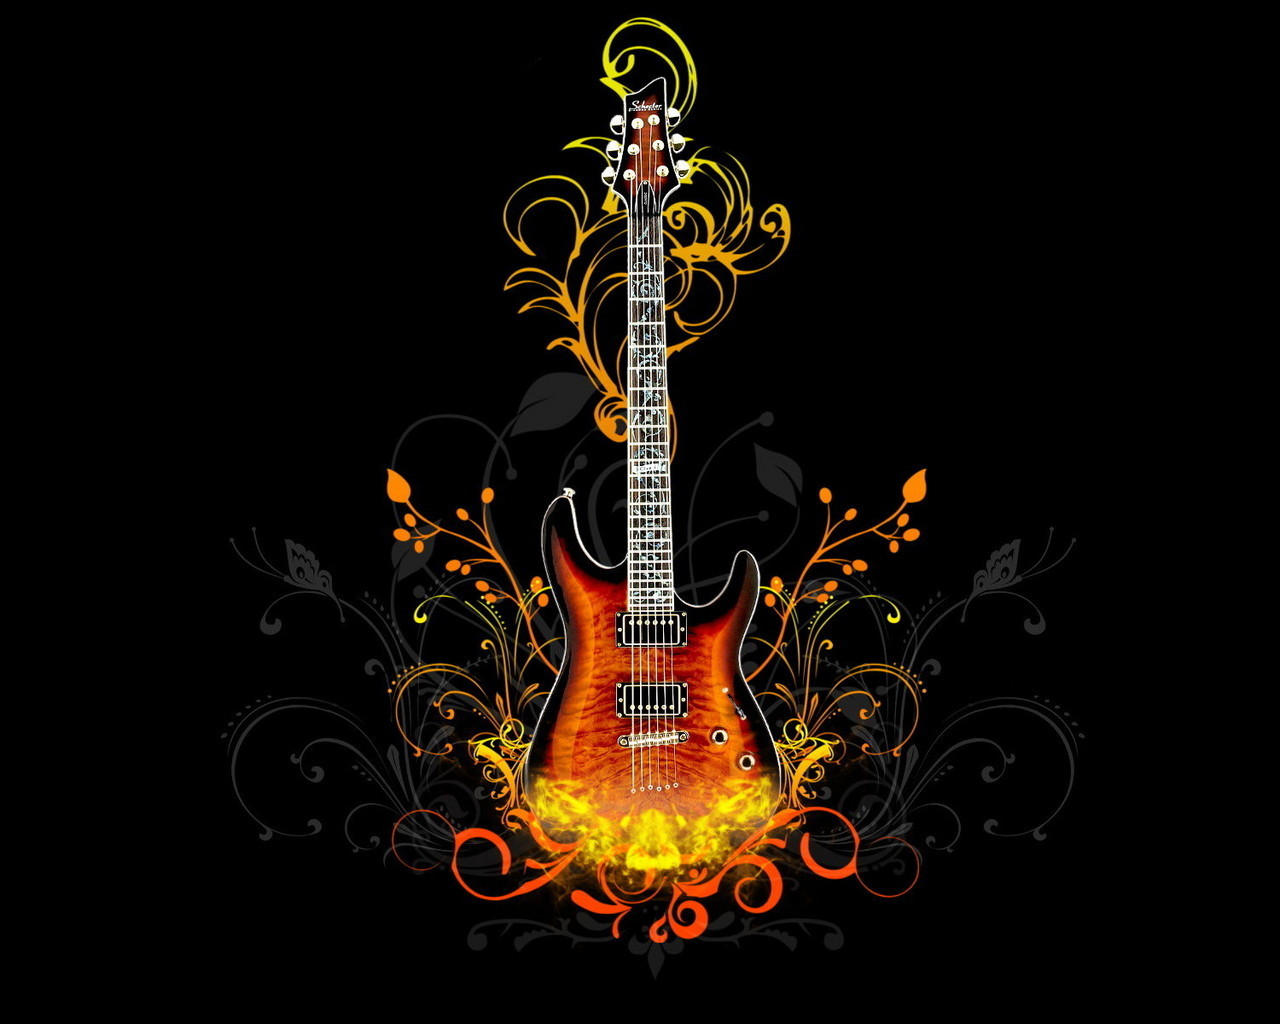 47414 download wallpaper Music, Background, Guitars, Objects screensavers and pictures for free